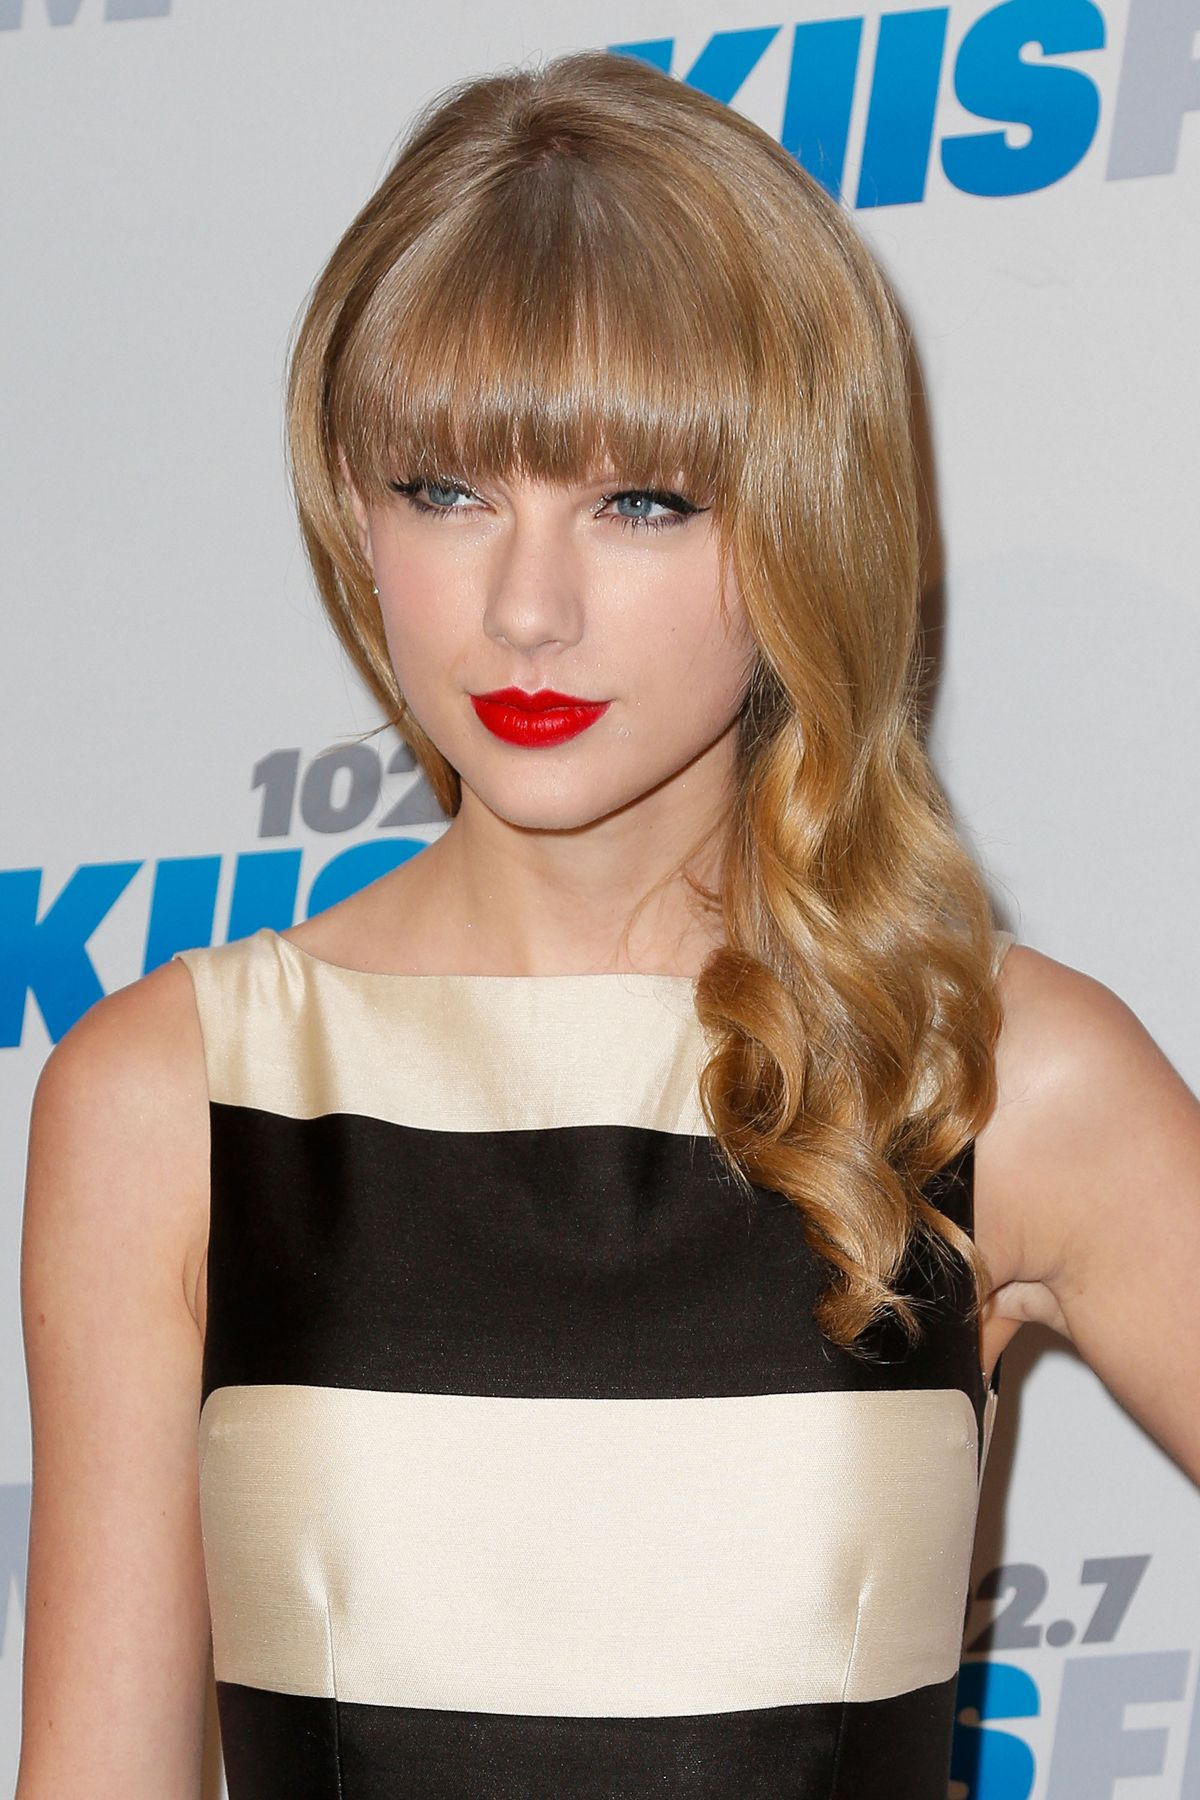 Taylor Swift Red Lips Lipstick Bangs Ash Blonde Hair Too Red